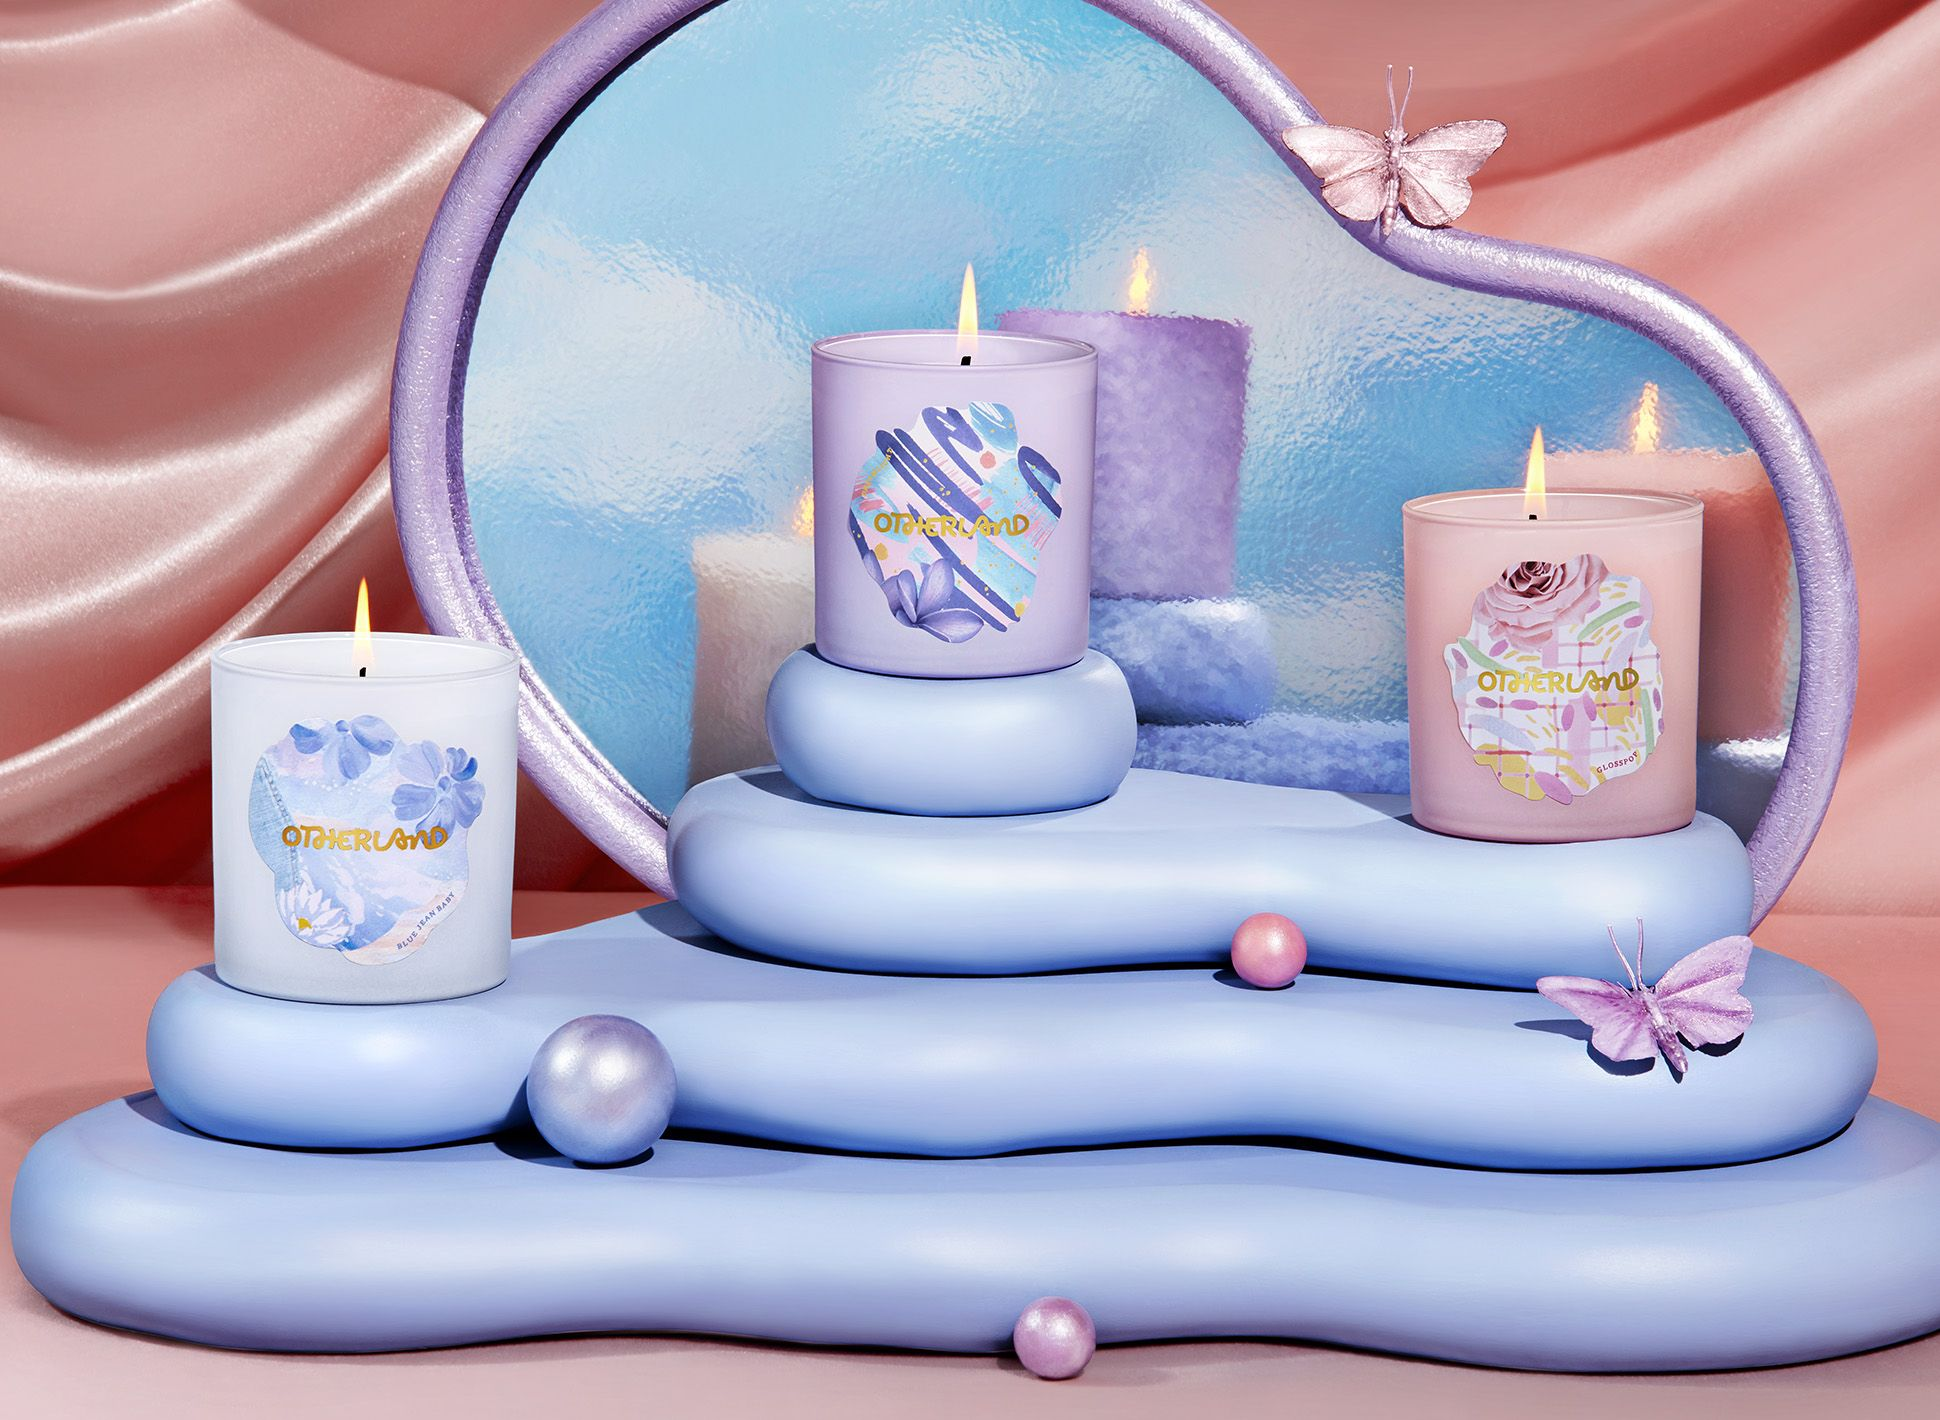 These '90s-Inspired Candles Are Like Limited Too for Grown-Ups